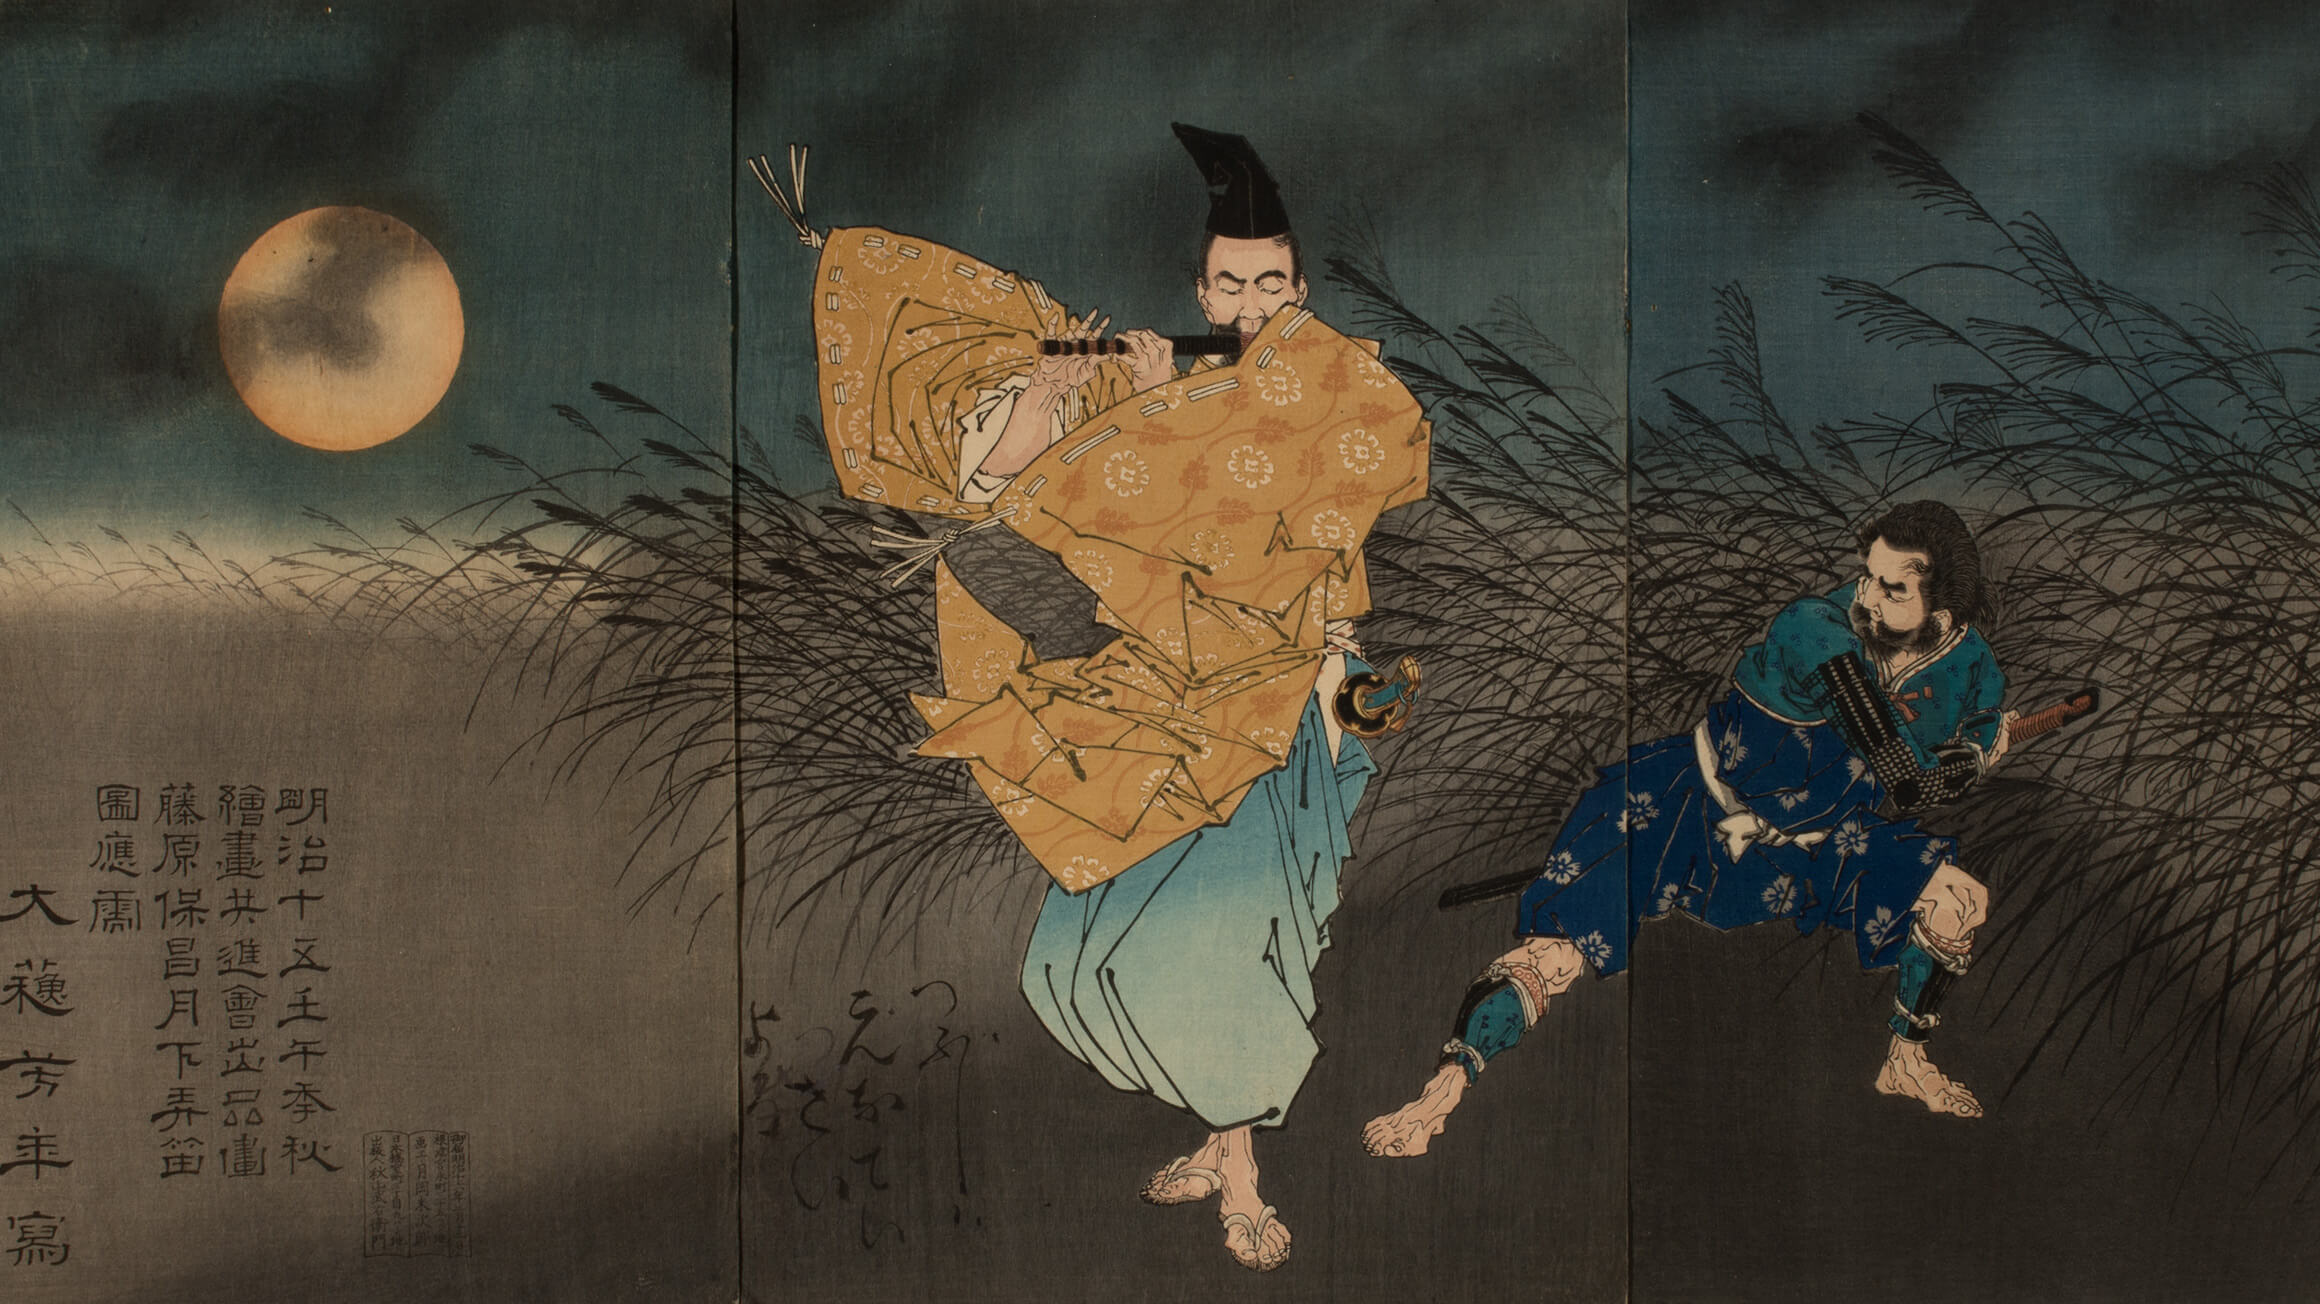 The Heian Poet Yasumasa Playing the Flute by Moonlight, Subduing the Bandit Yasusuke with His Music (detail), 1883, by Tsukioka Yoshitoshi (Japanese, 1839–92), 1989-47-332a--c